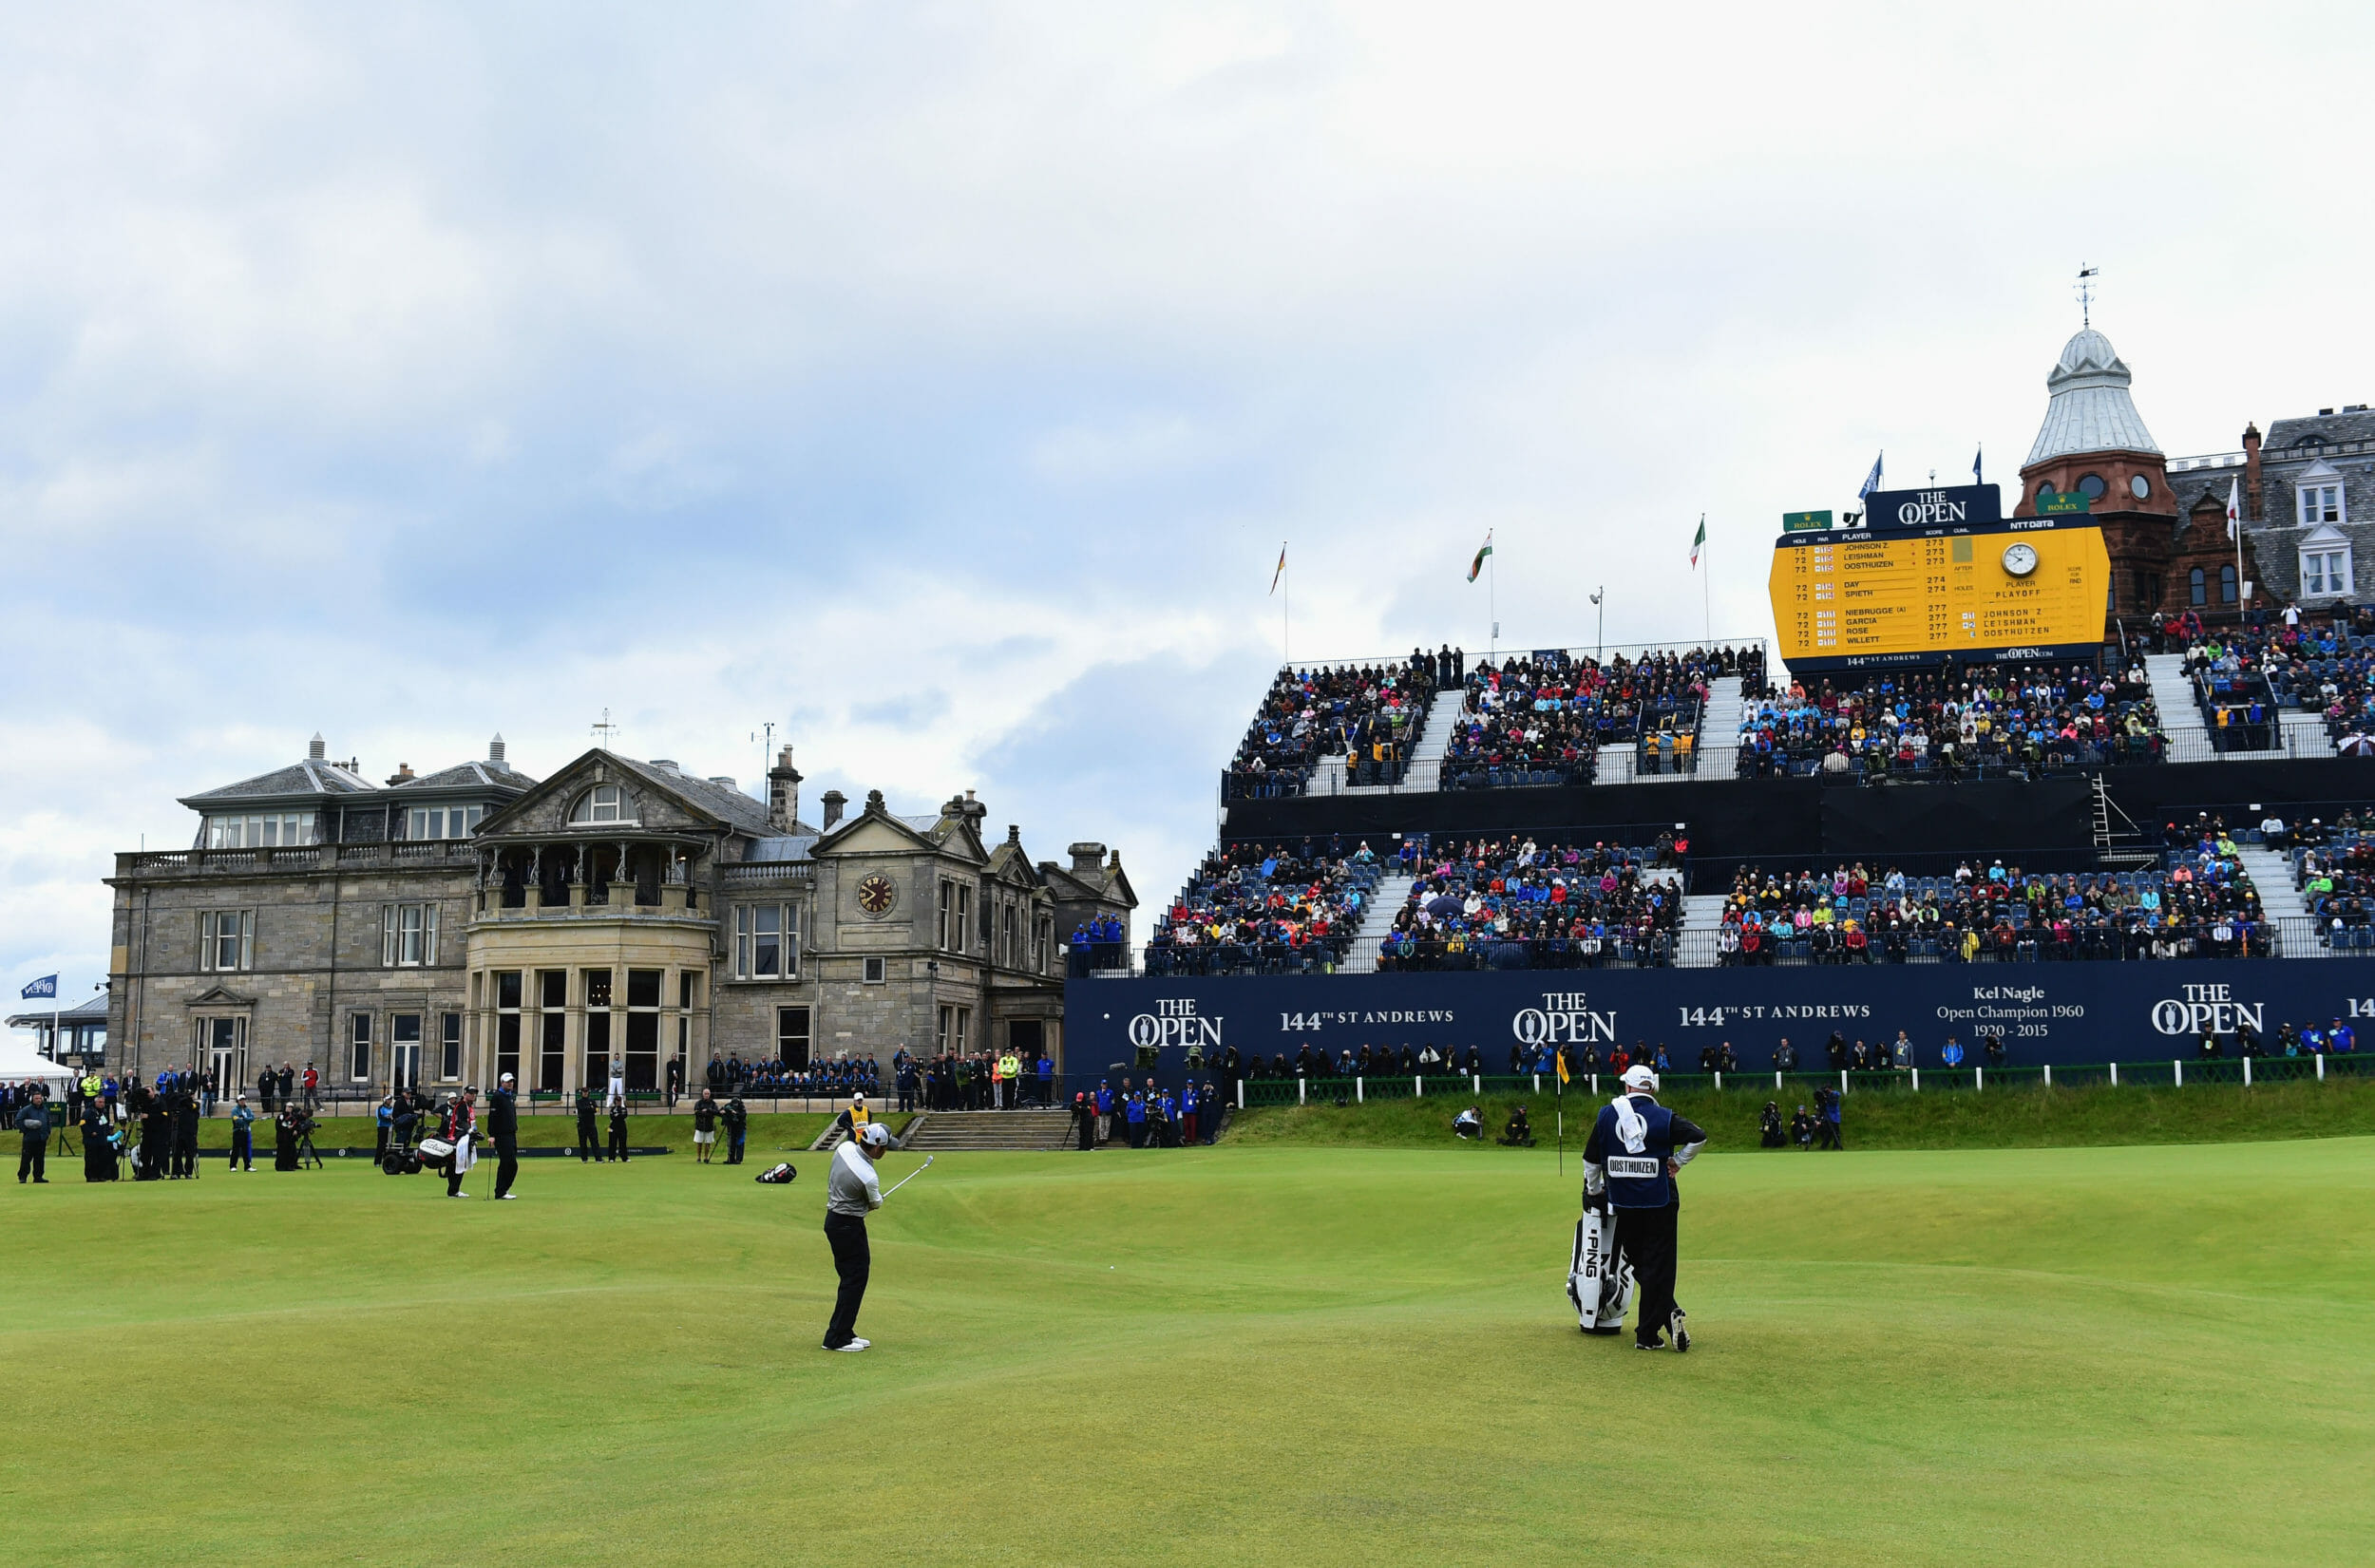 Louis Oostheuizen walks on the green in front of a grand stand at The Open